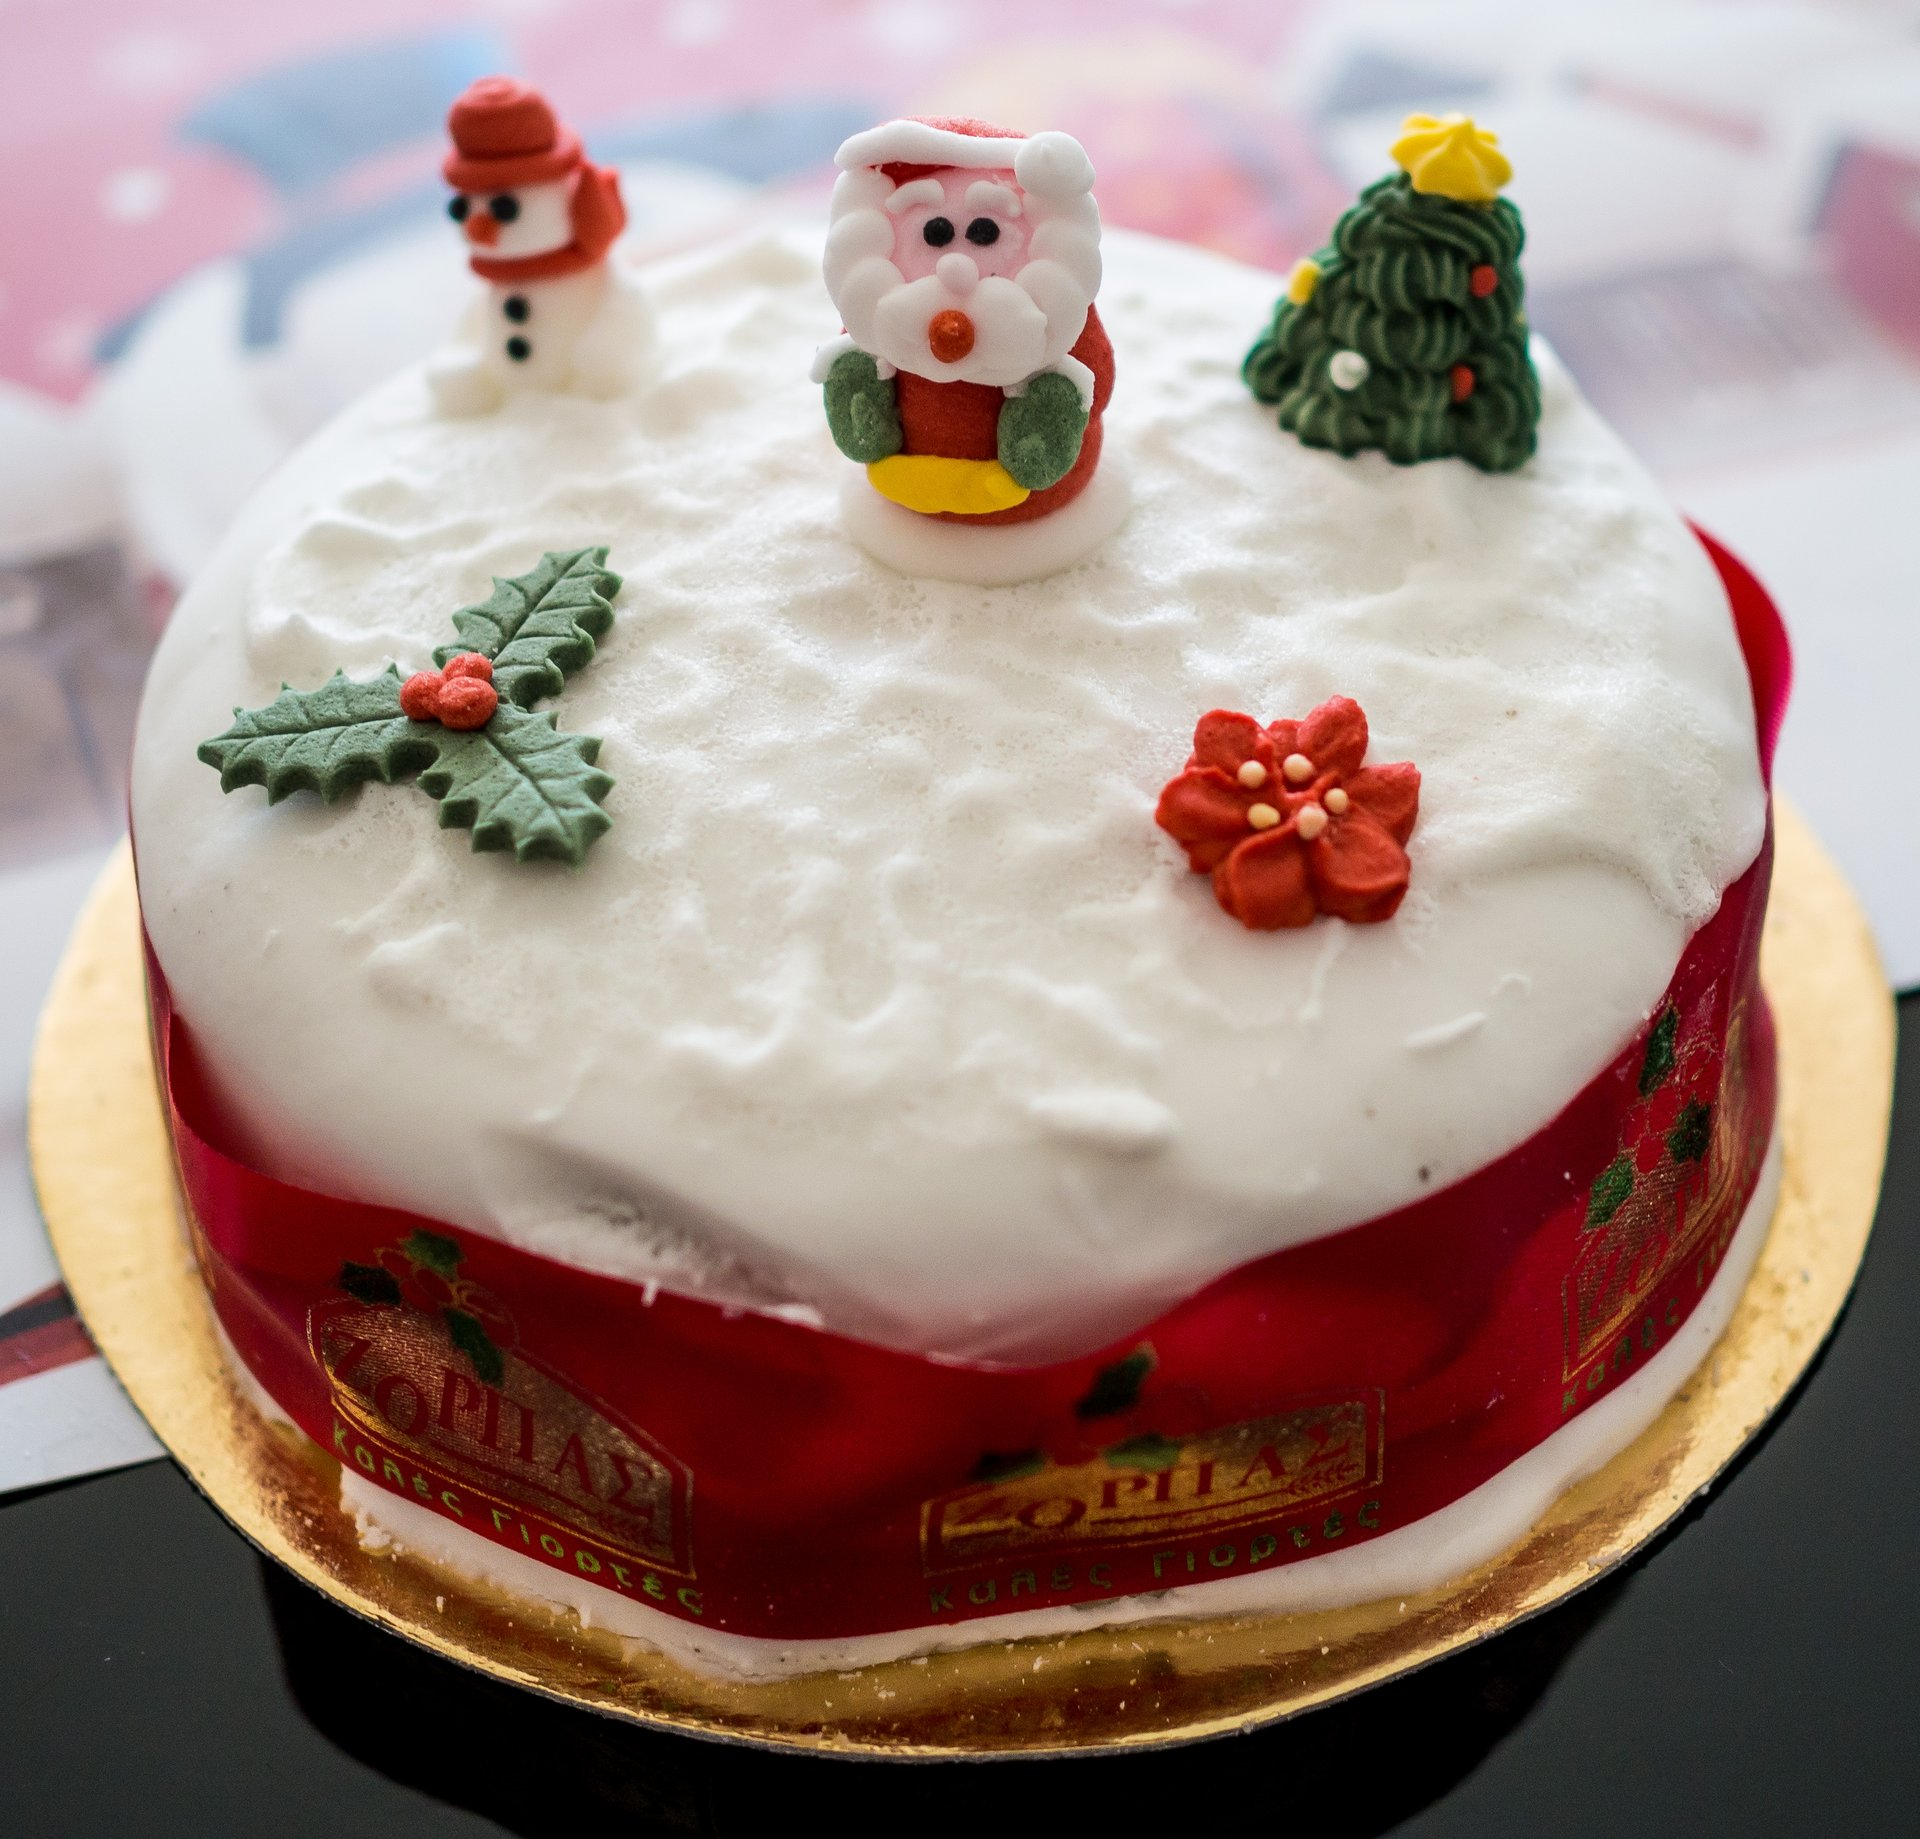 Christmas Cake in Cyprus 2019 - Best Time